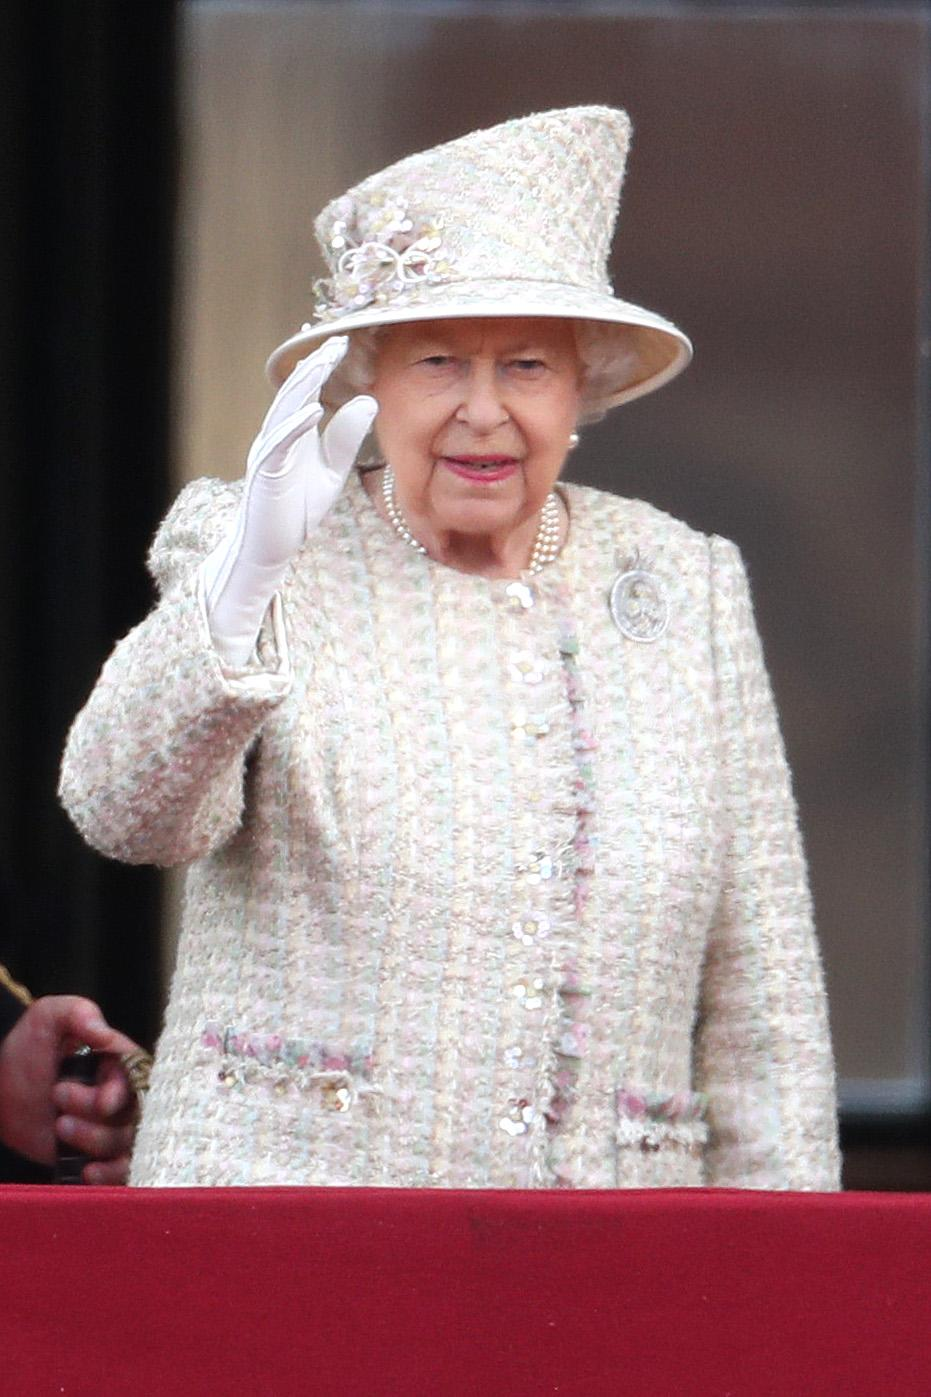 The Queen wore a more neutral outfit than usual in 2019, in tweed by Angela Kelly, her personal dresser, with a Launer handbag and Anella and Davide shoes. (Getty Images)